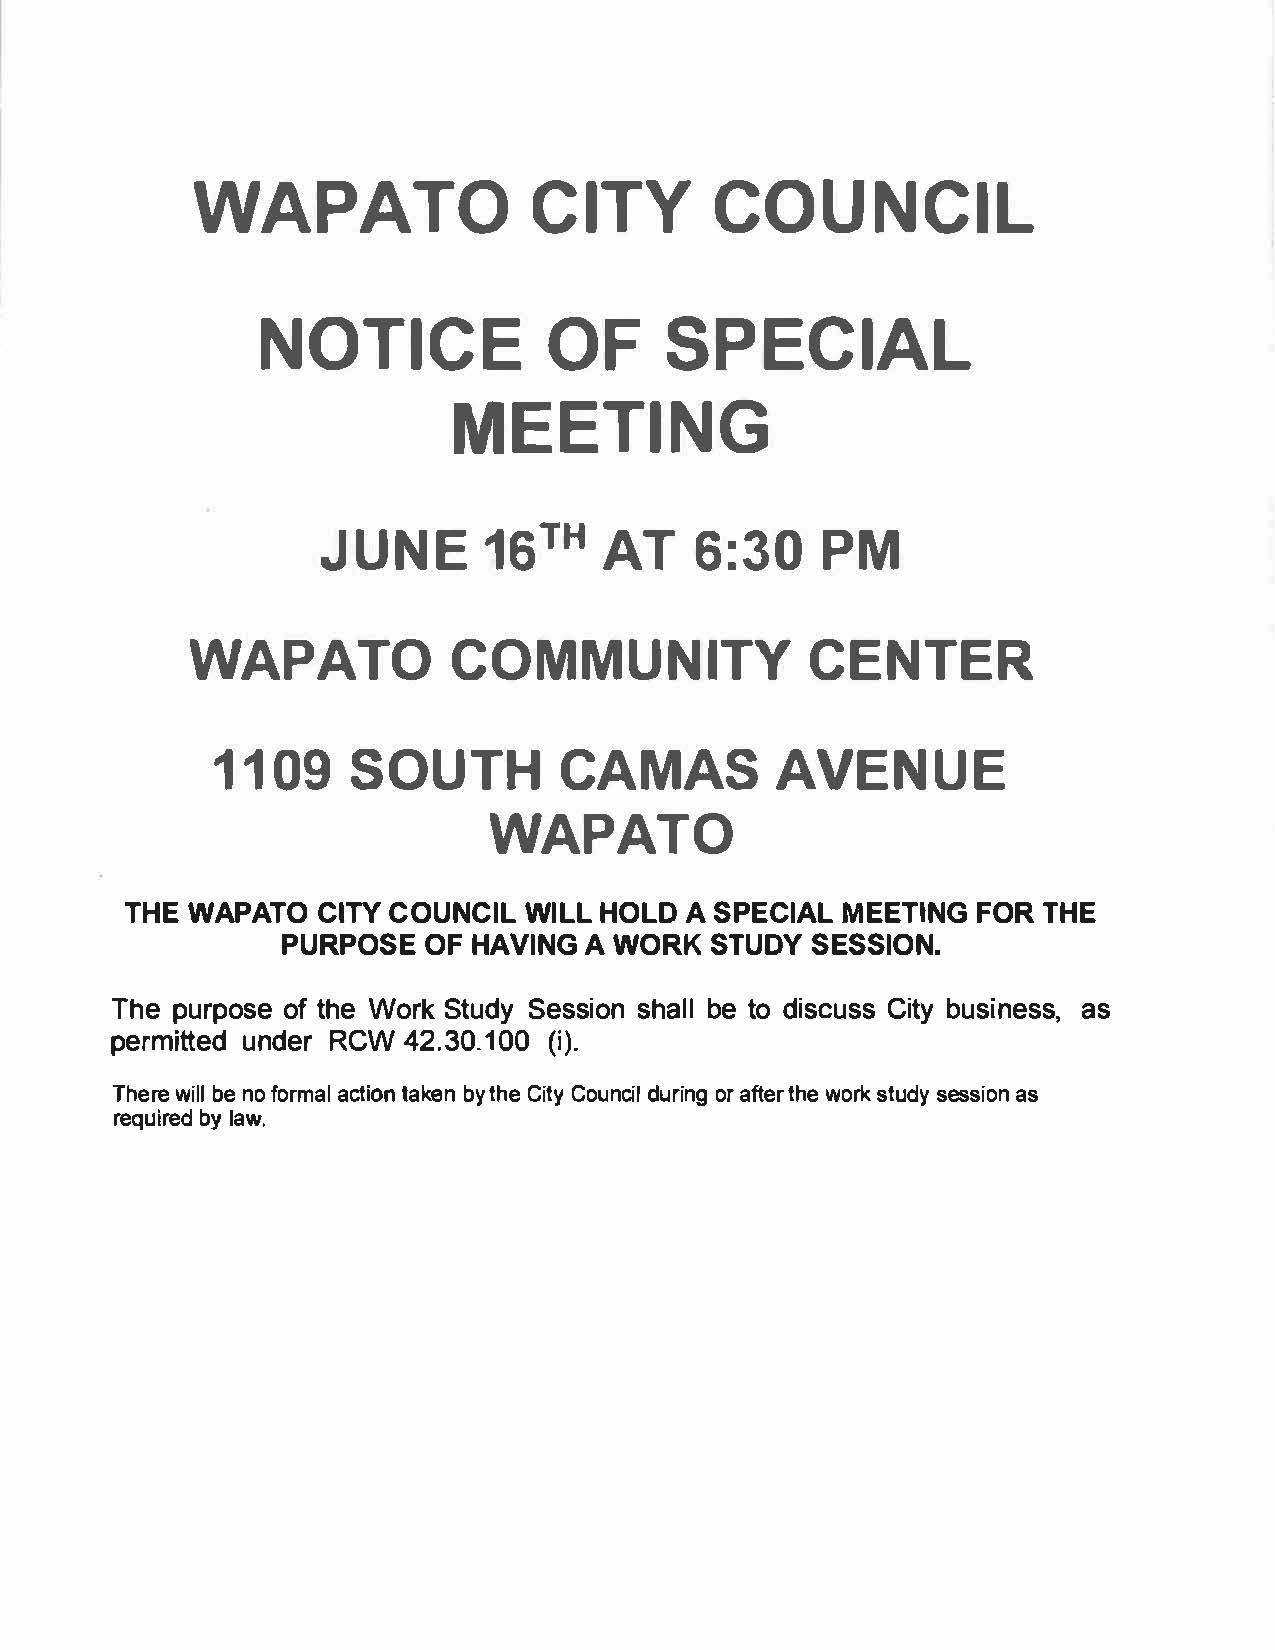 Special Meeting June 16 @ 6:30 PM